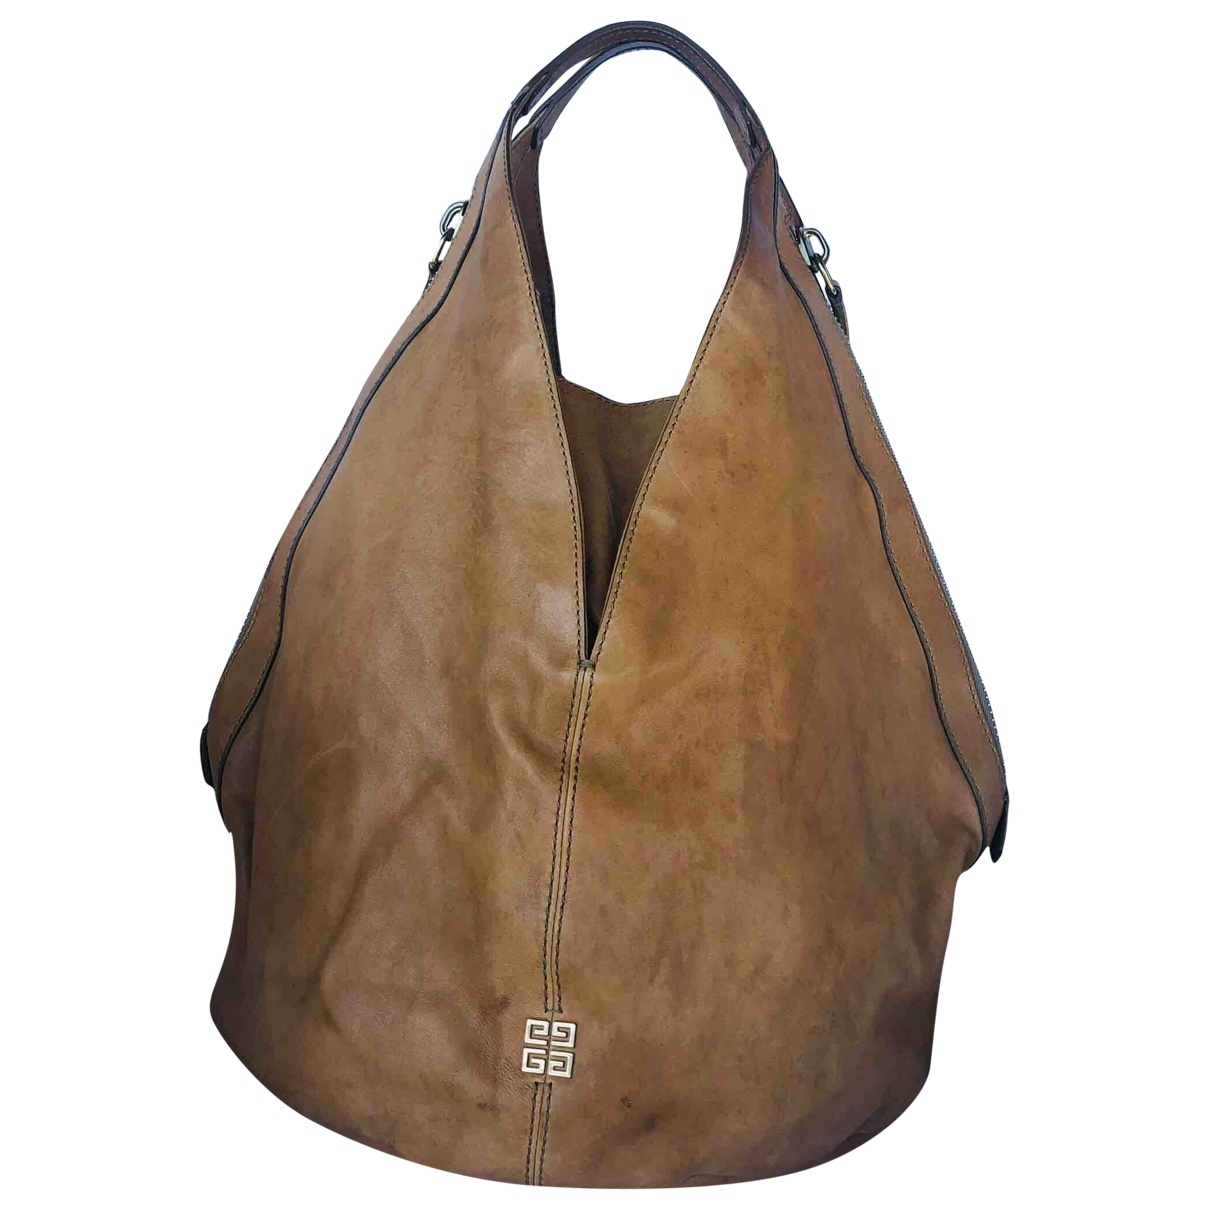 Givenchy \N Camel Leather handbag for Women \N